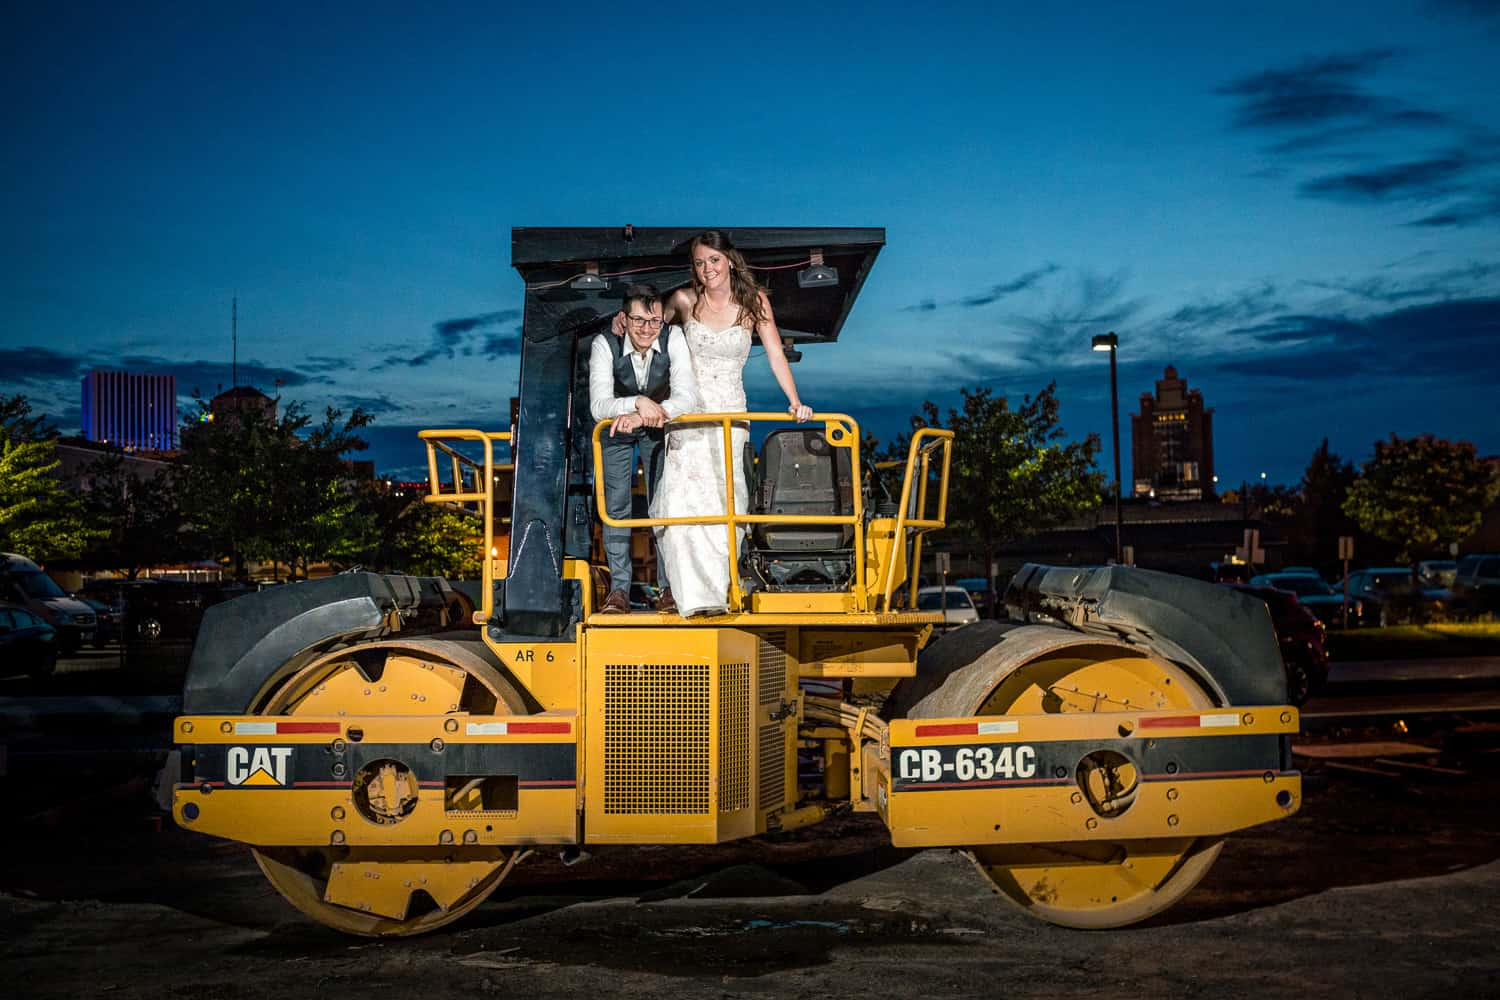 bride and groom wedding portrait at night, on a steam roller.